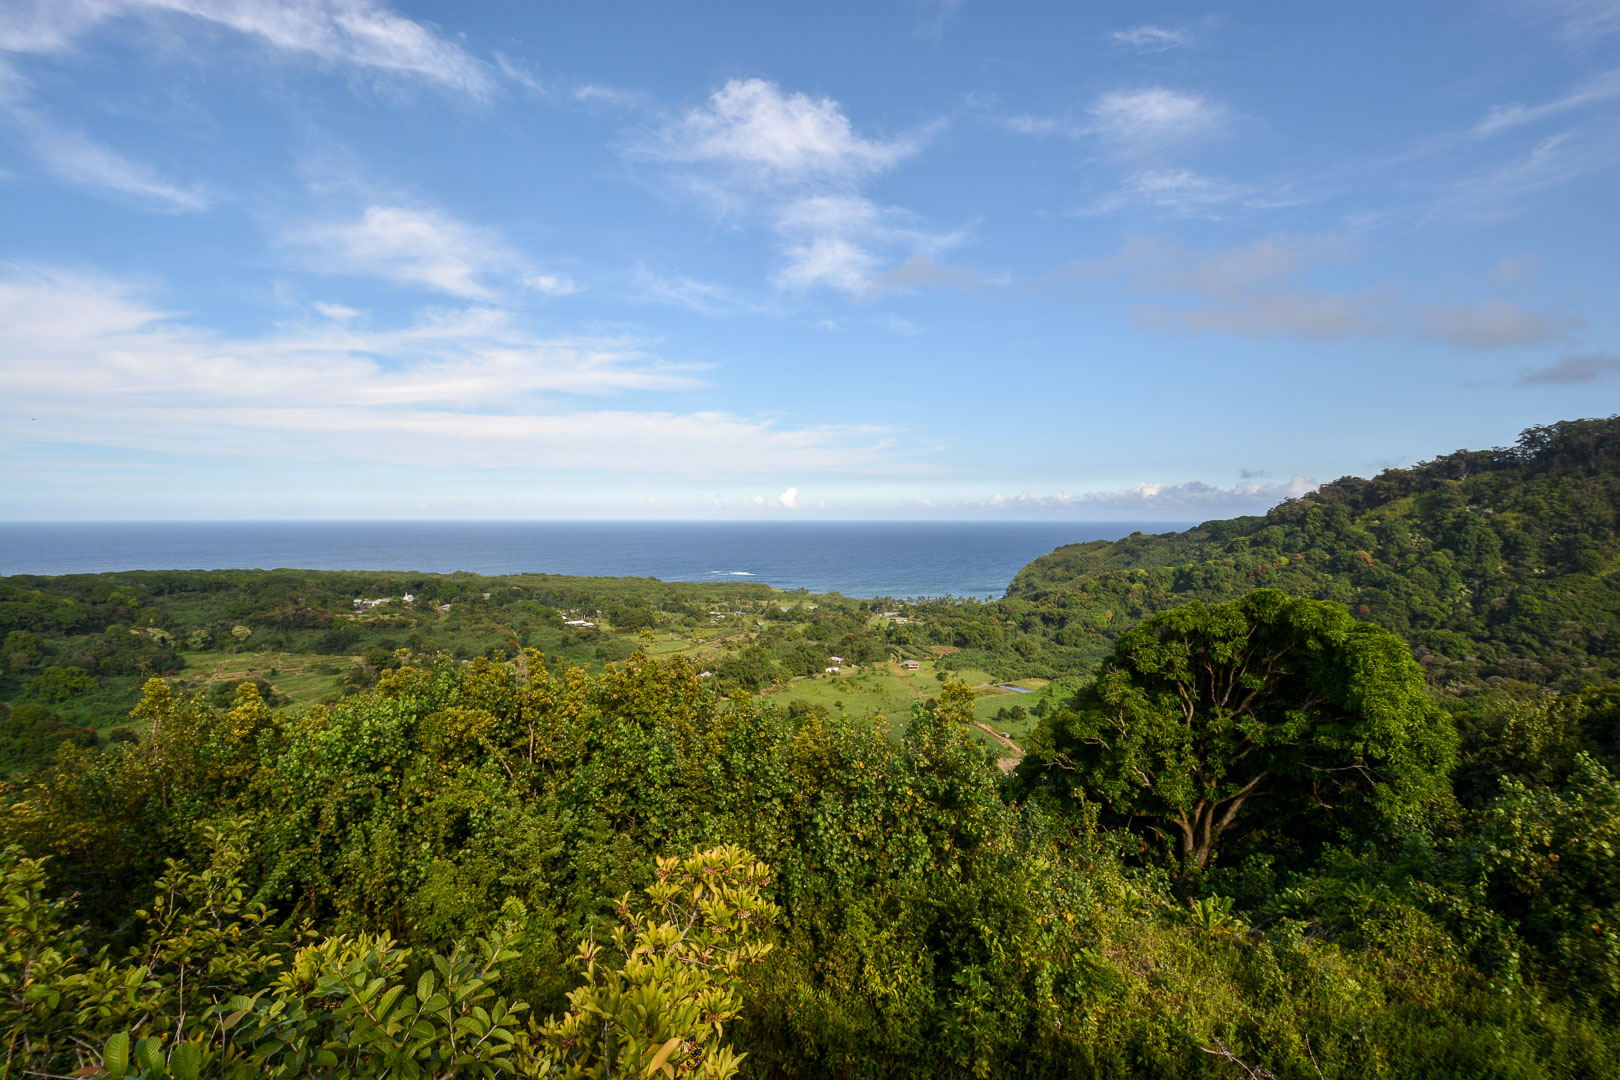 A lookout point along the road to Hana